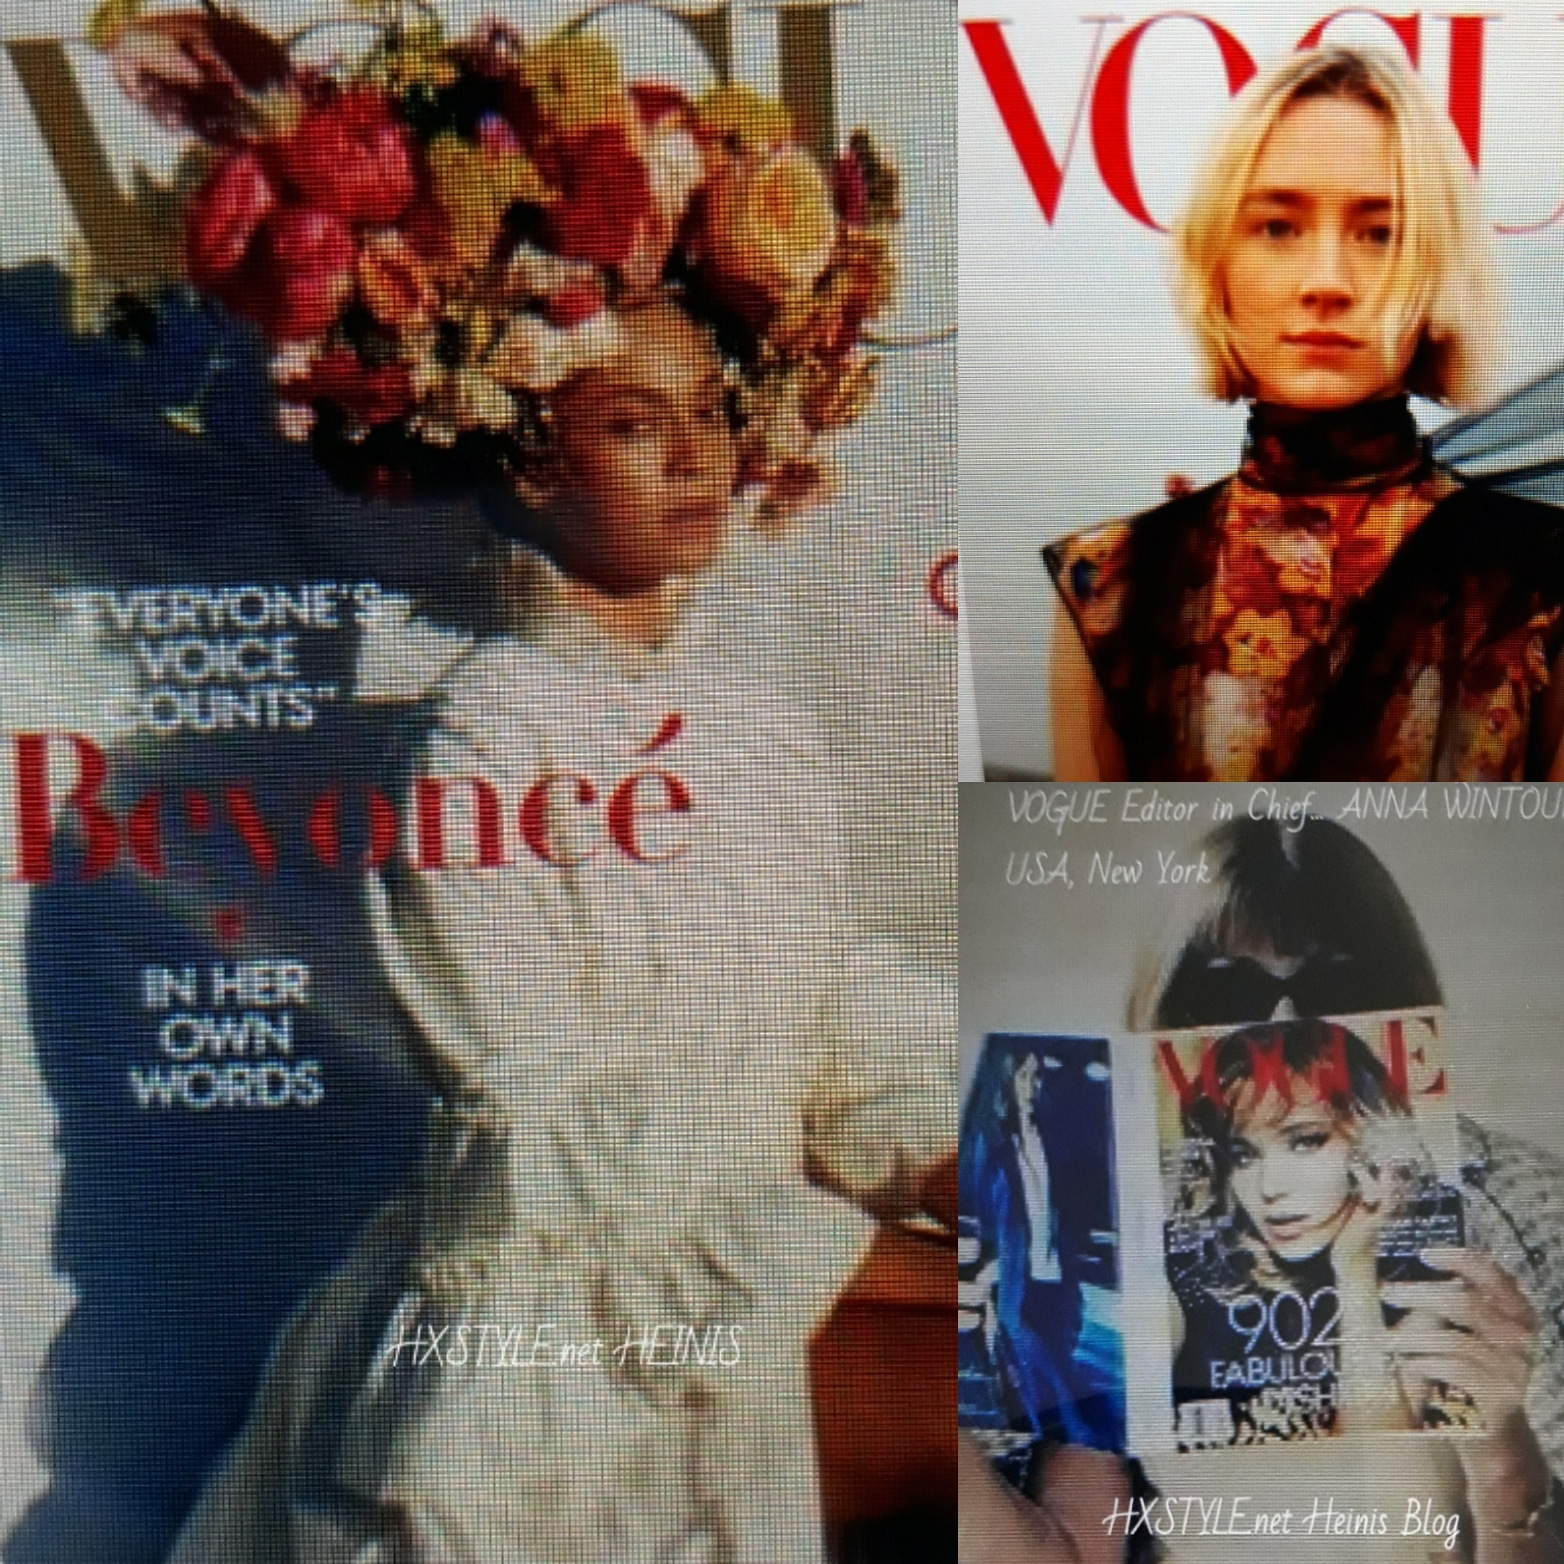 VOGUE NEWS&TRENDS. Anna Wintour: USA New York, Beyonce, BEST BEAUTY&Photos, New Videos…16.8.2018 Favourites&Life Style. HXSTYLE.net HEINIS